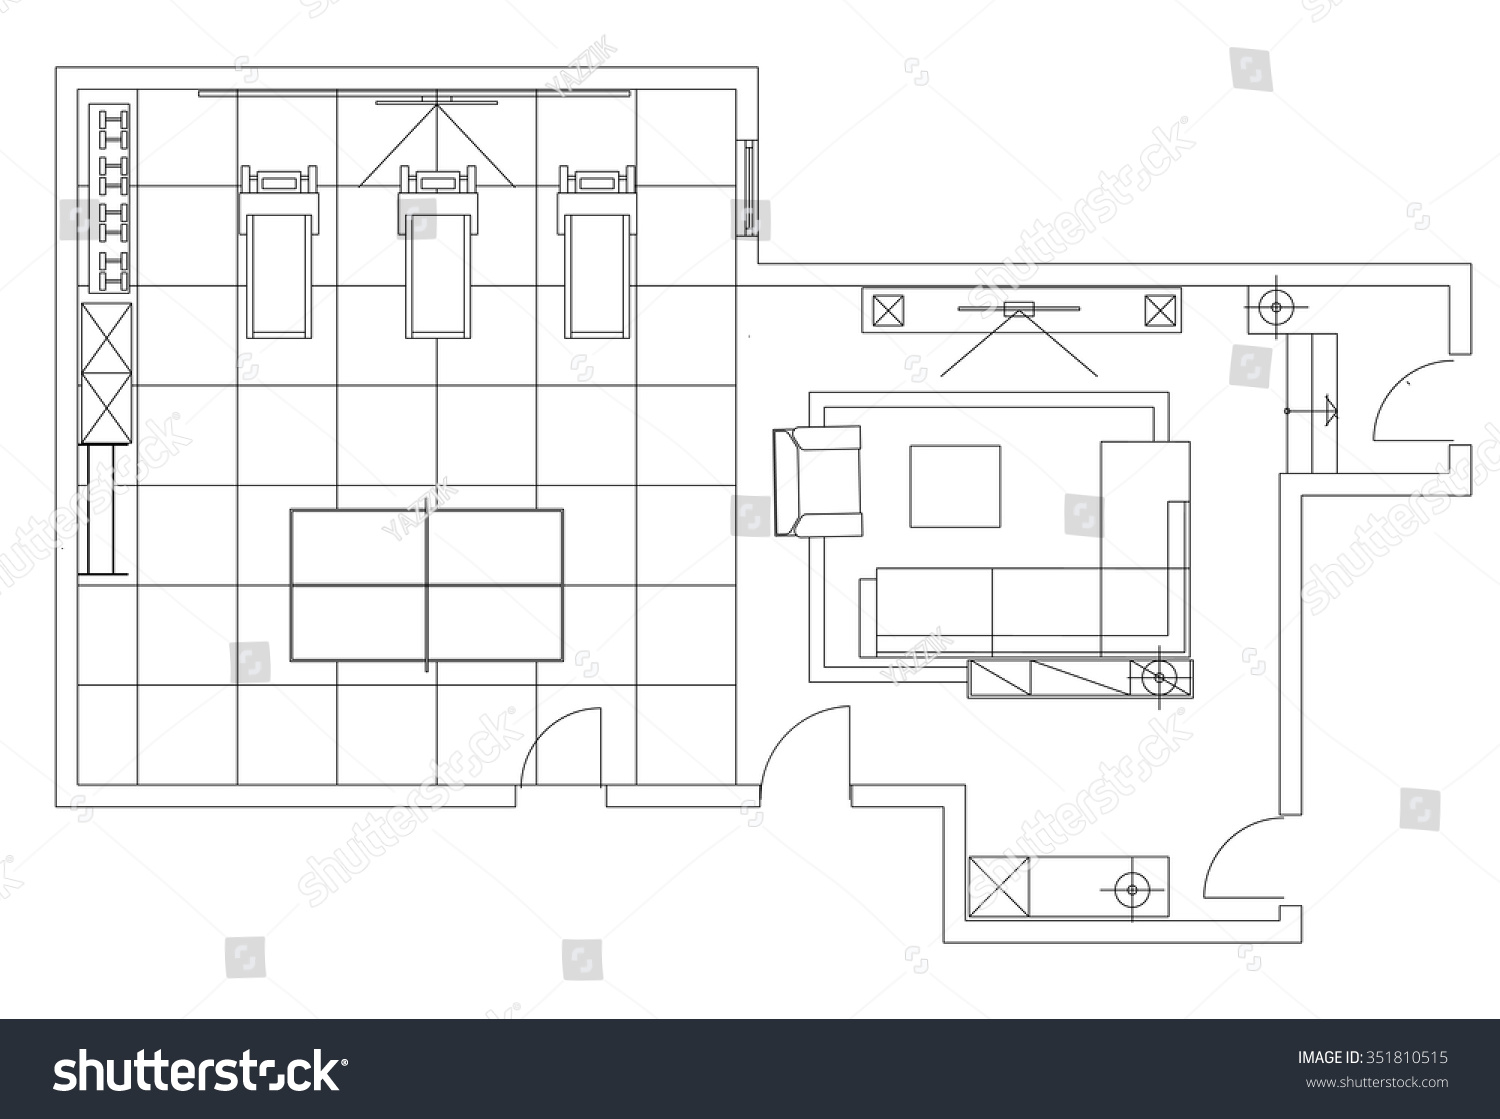 Standard Furniture Symbols Used Architecture Plans Stock Vector ...